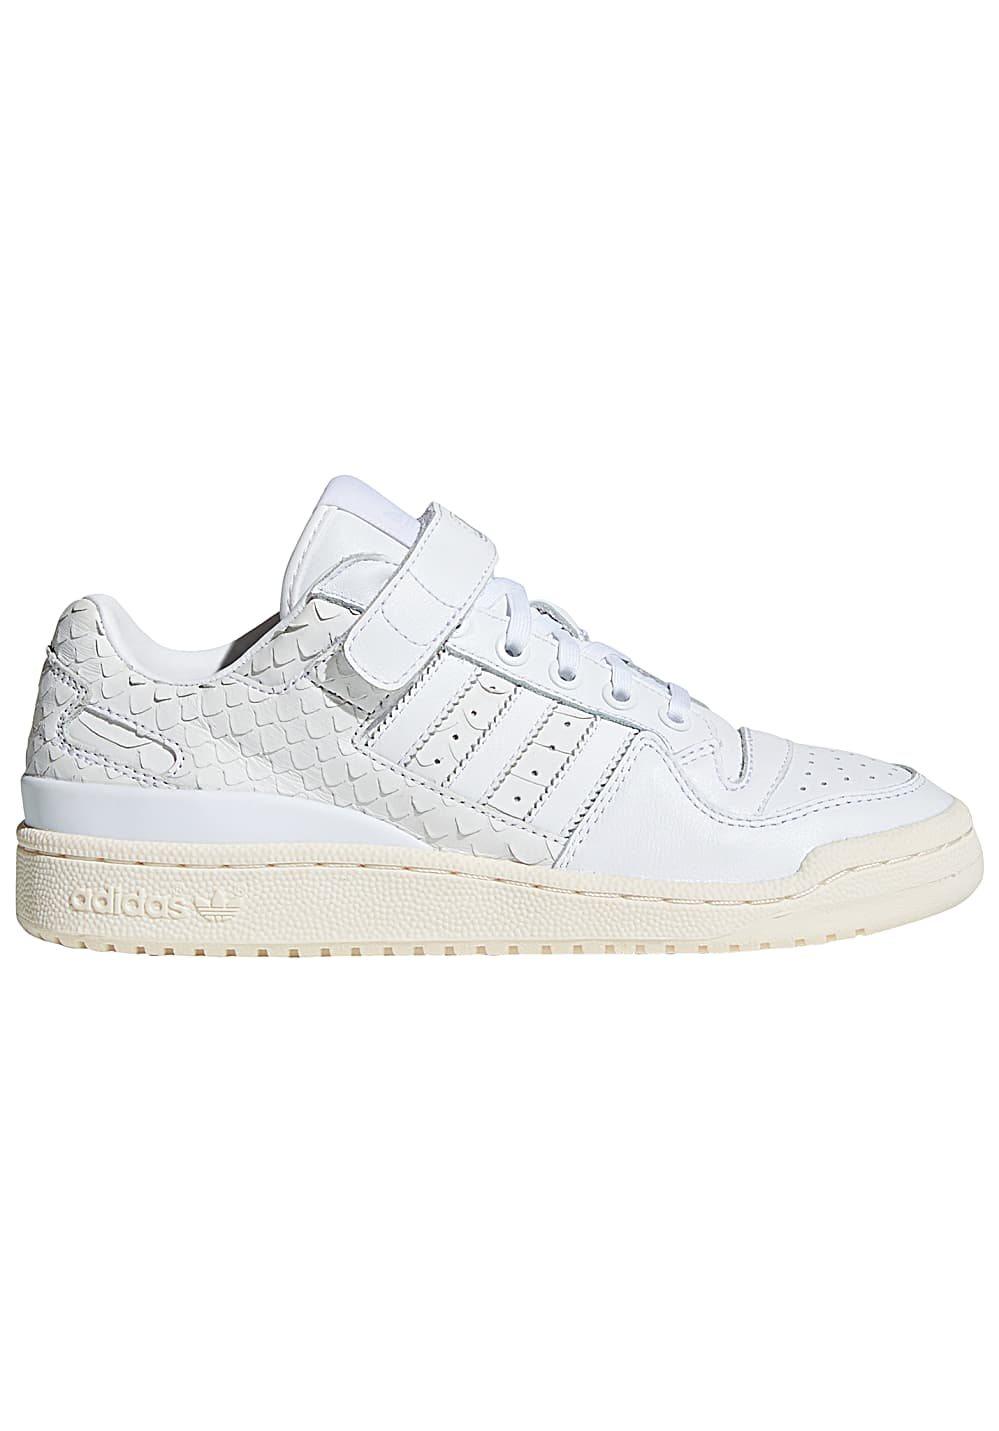 ADIDAS ORIGINALS Forum Lo Baskets pour Femme Blanc